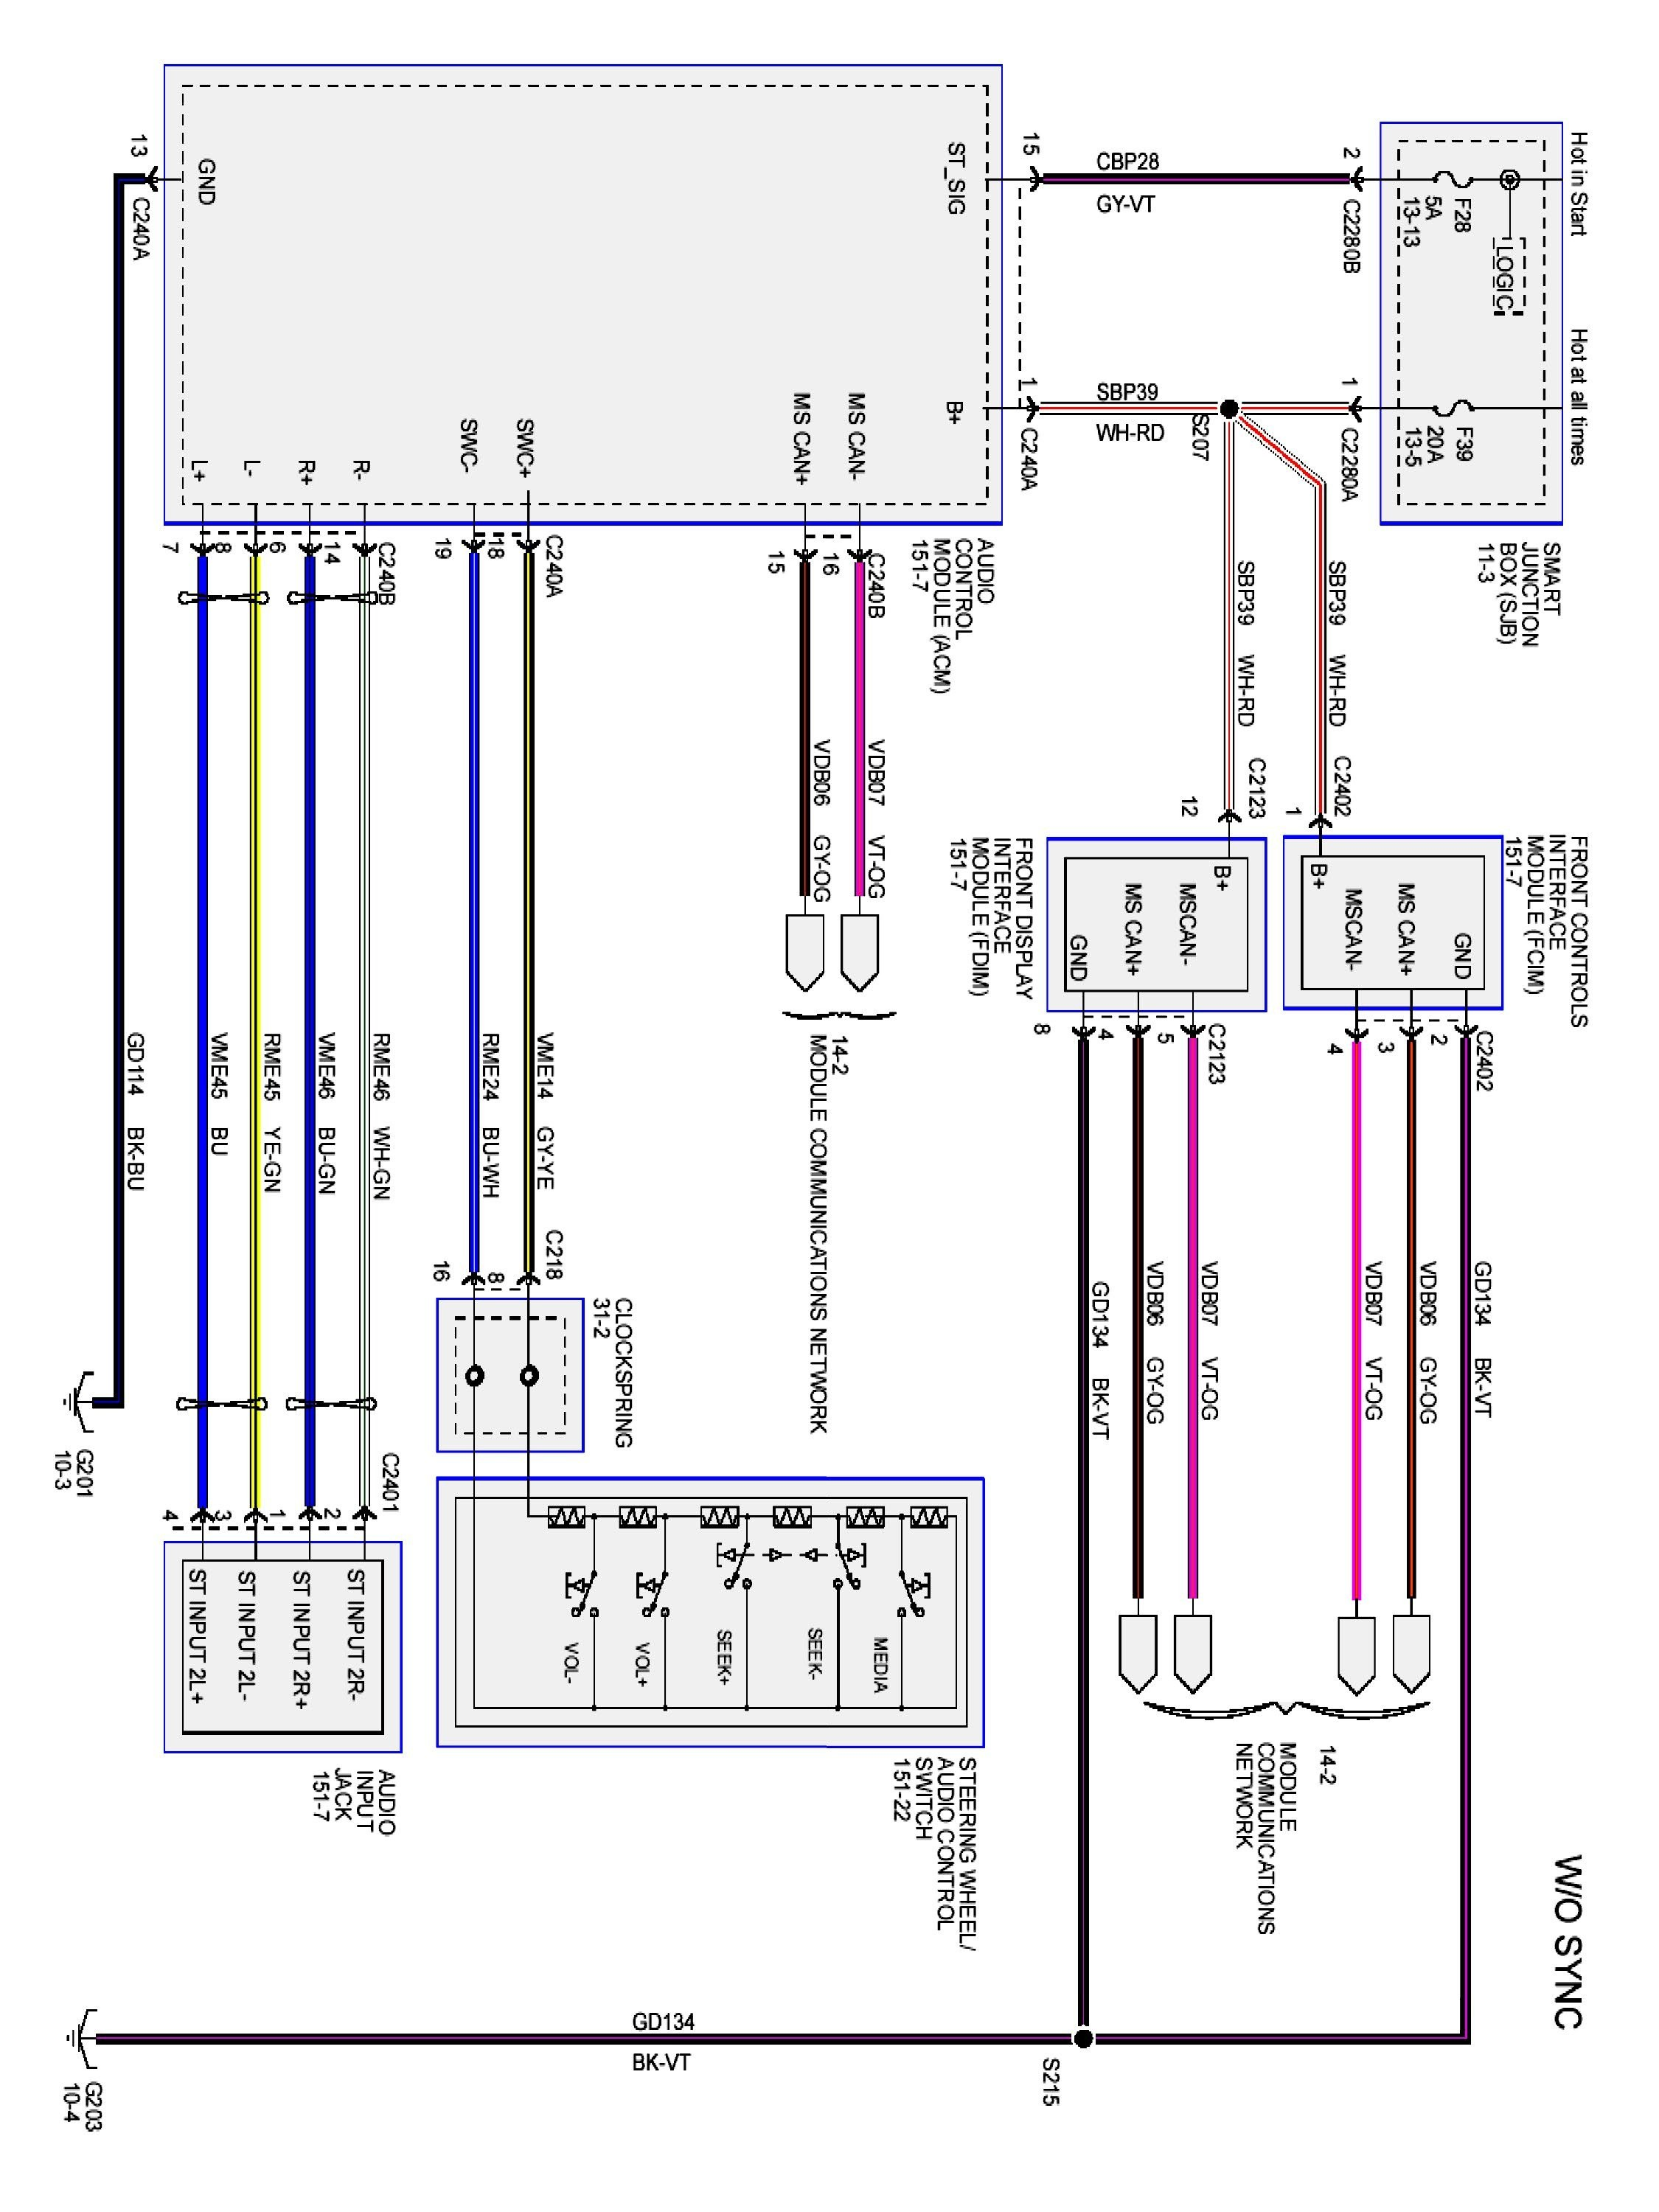 Home Theater Speaker Wiring Diagram Elegant Surround Sound Wire Management Trusted Car Radio Cables Chevy Kit Stereo Of